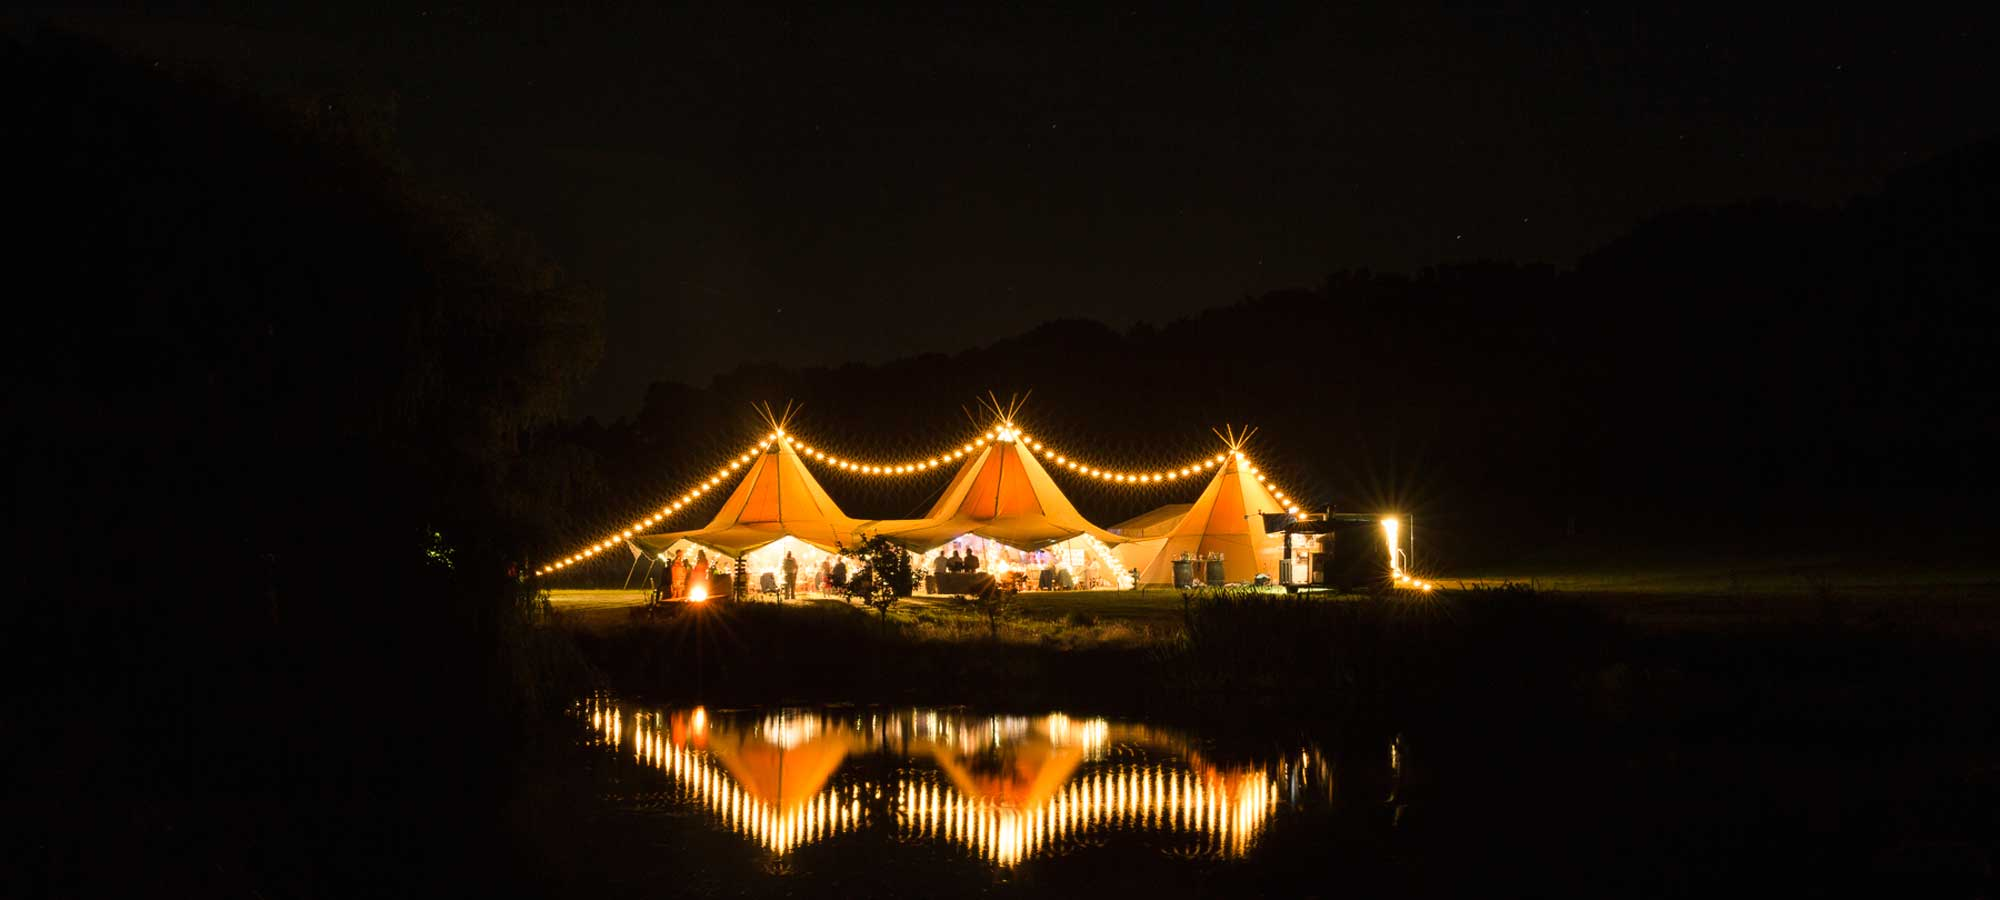 Tentipi event tents by night - event teepee to purchase